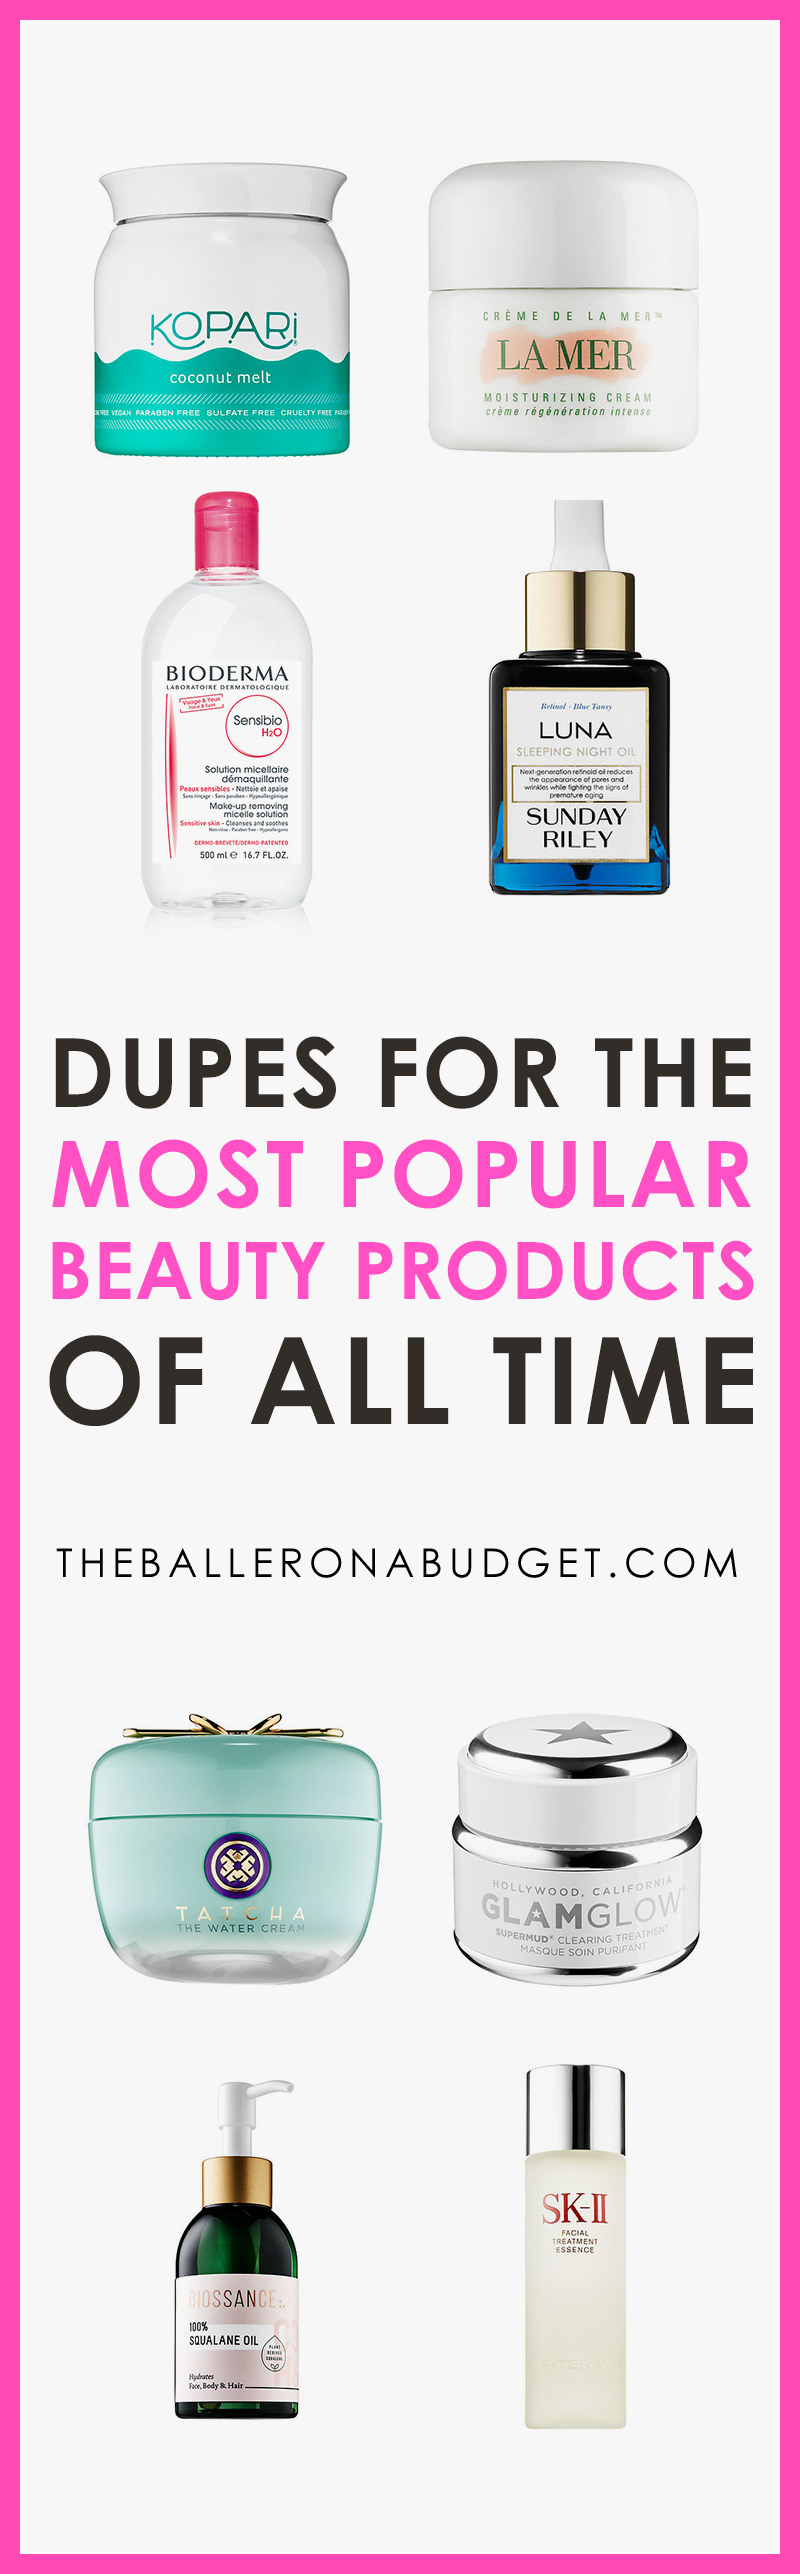 Pinterest graphic with expensive luxury beauty products sold at Sephora and affordable dupes